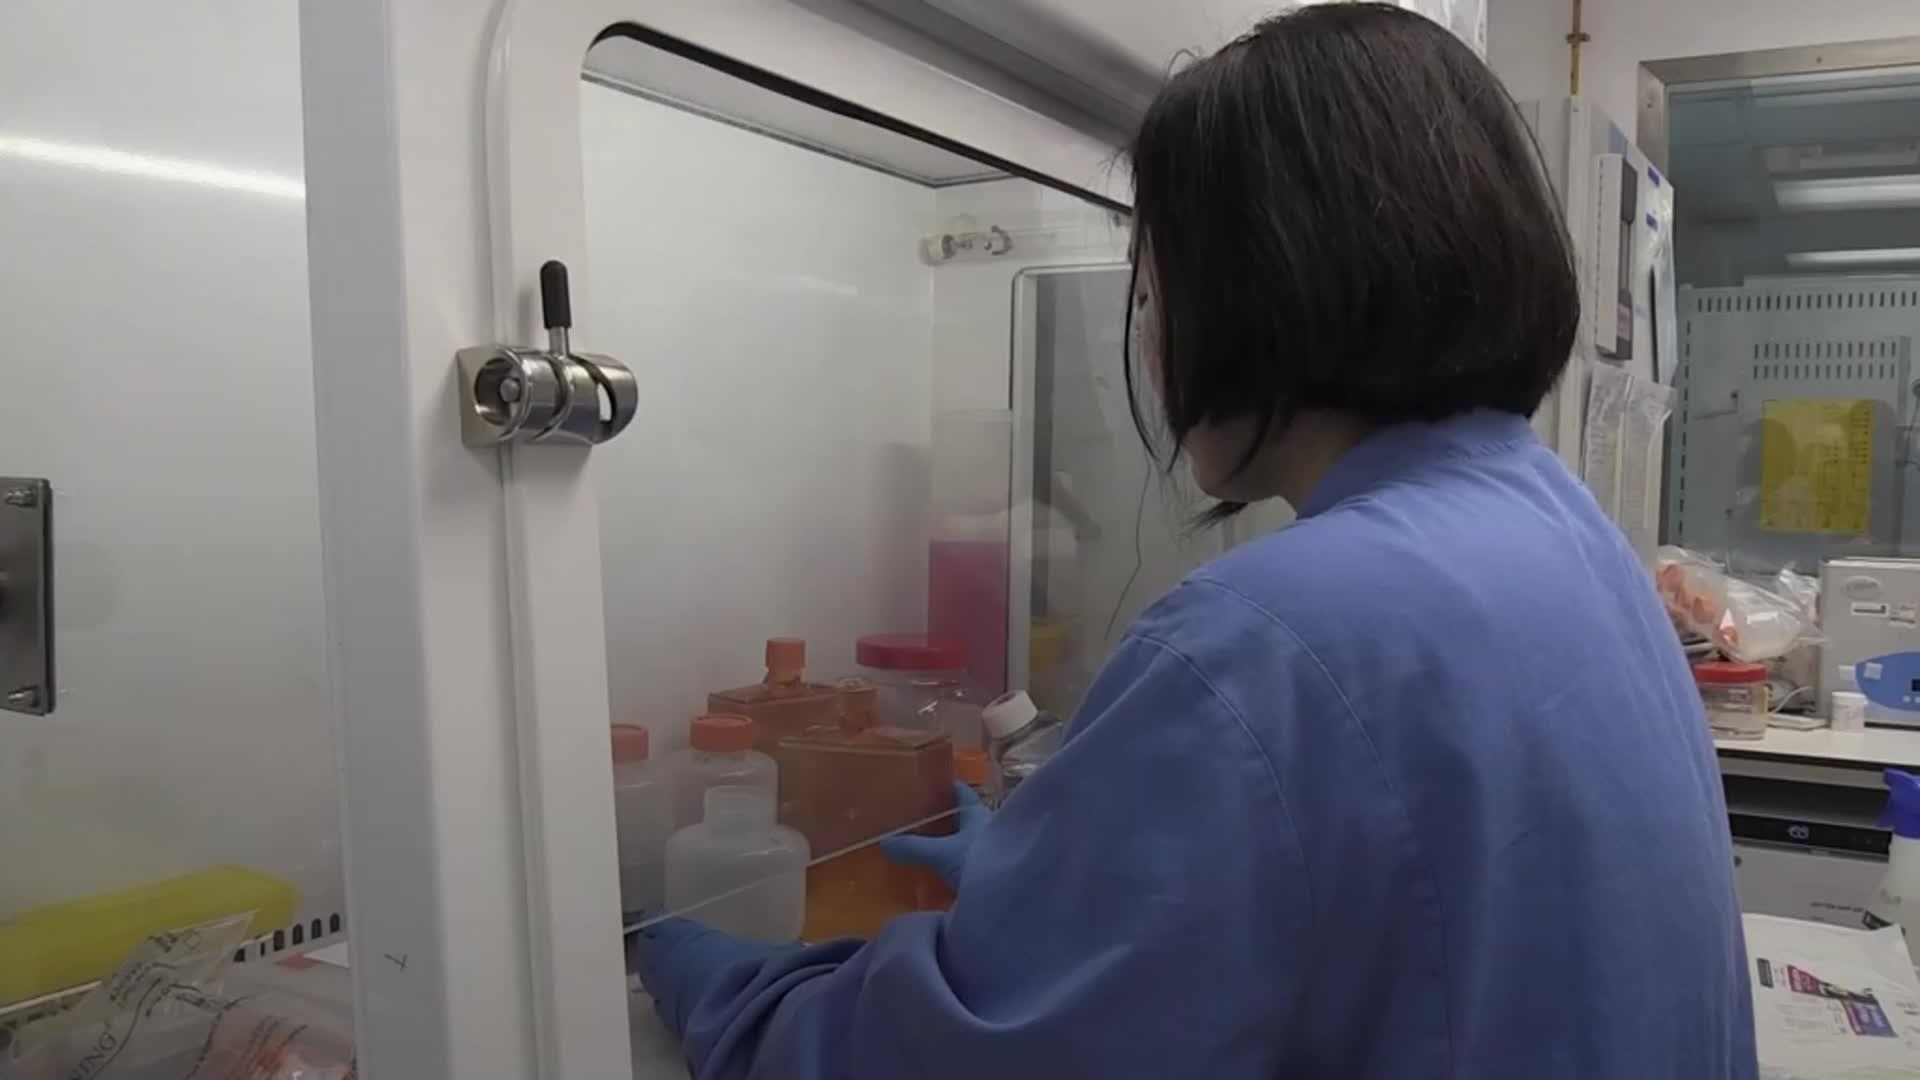 New 90-minute tests for Covid-19 to be rolled out [Video]